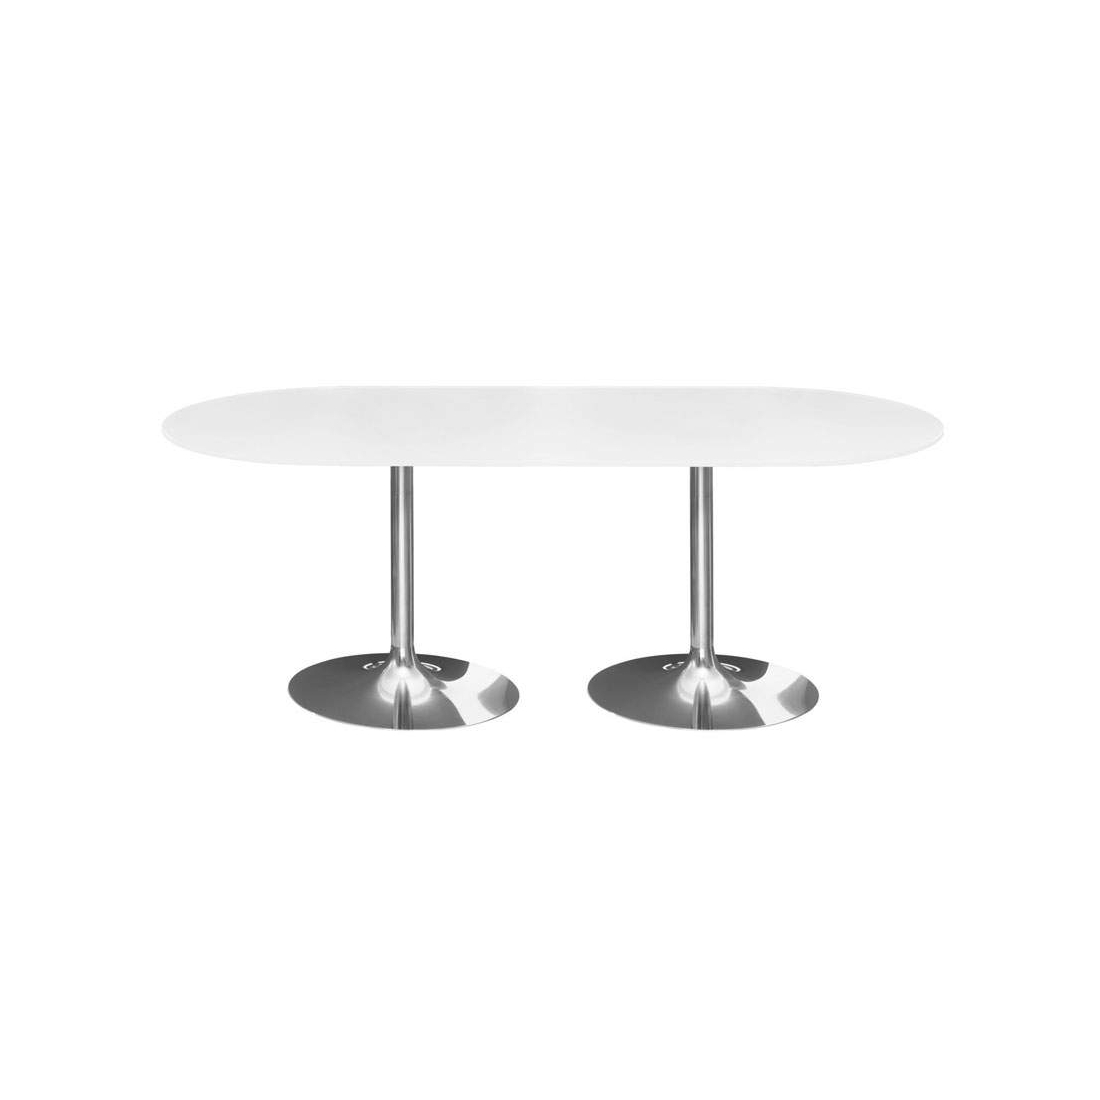 Table salle manger joe 8 myyour zendart design for Salle a manger 8 personnes